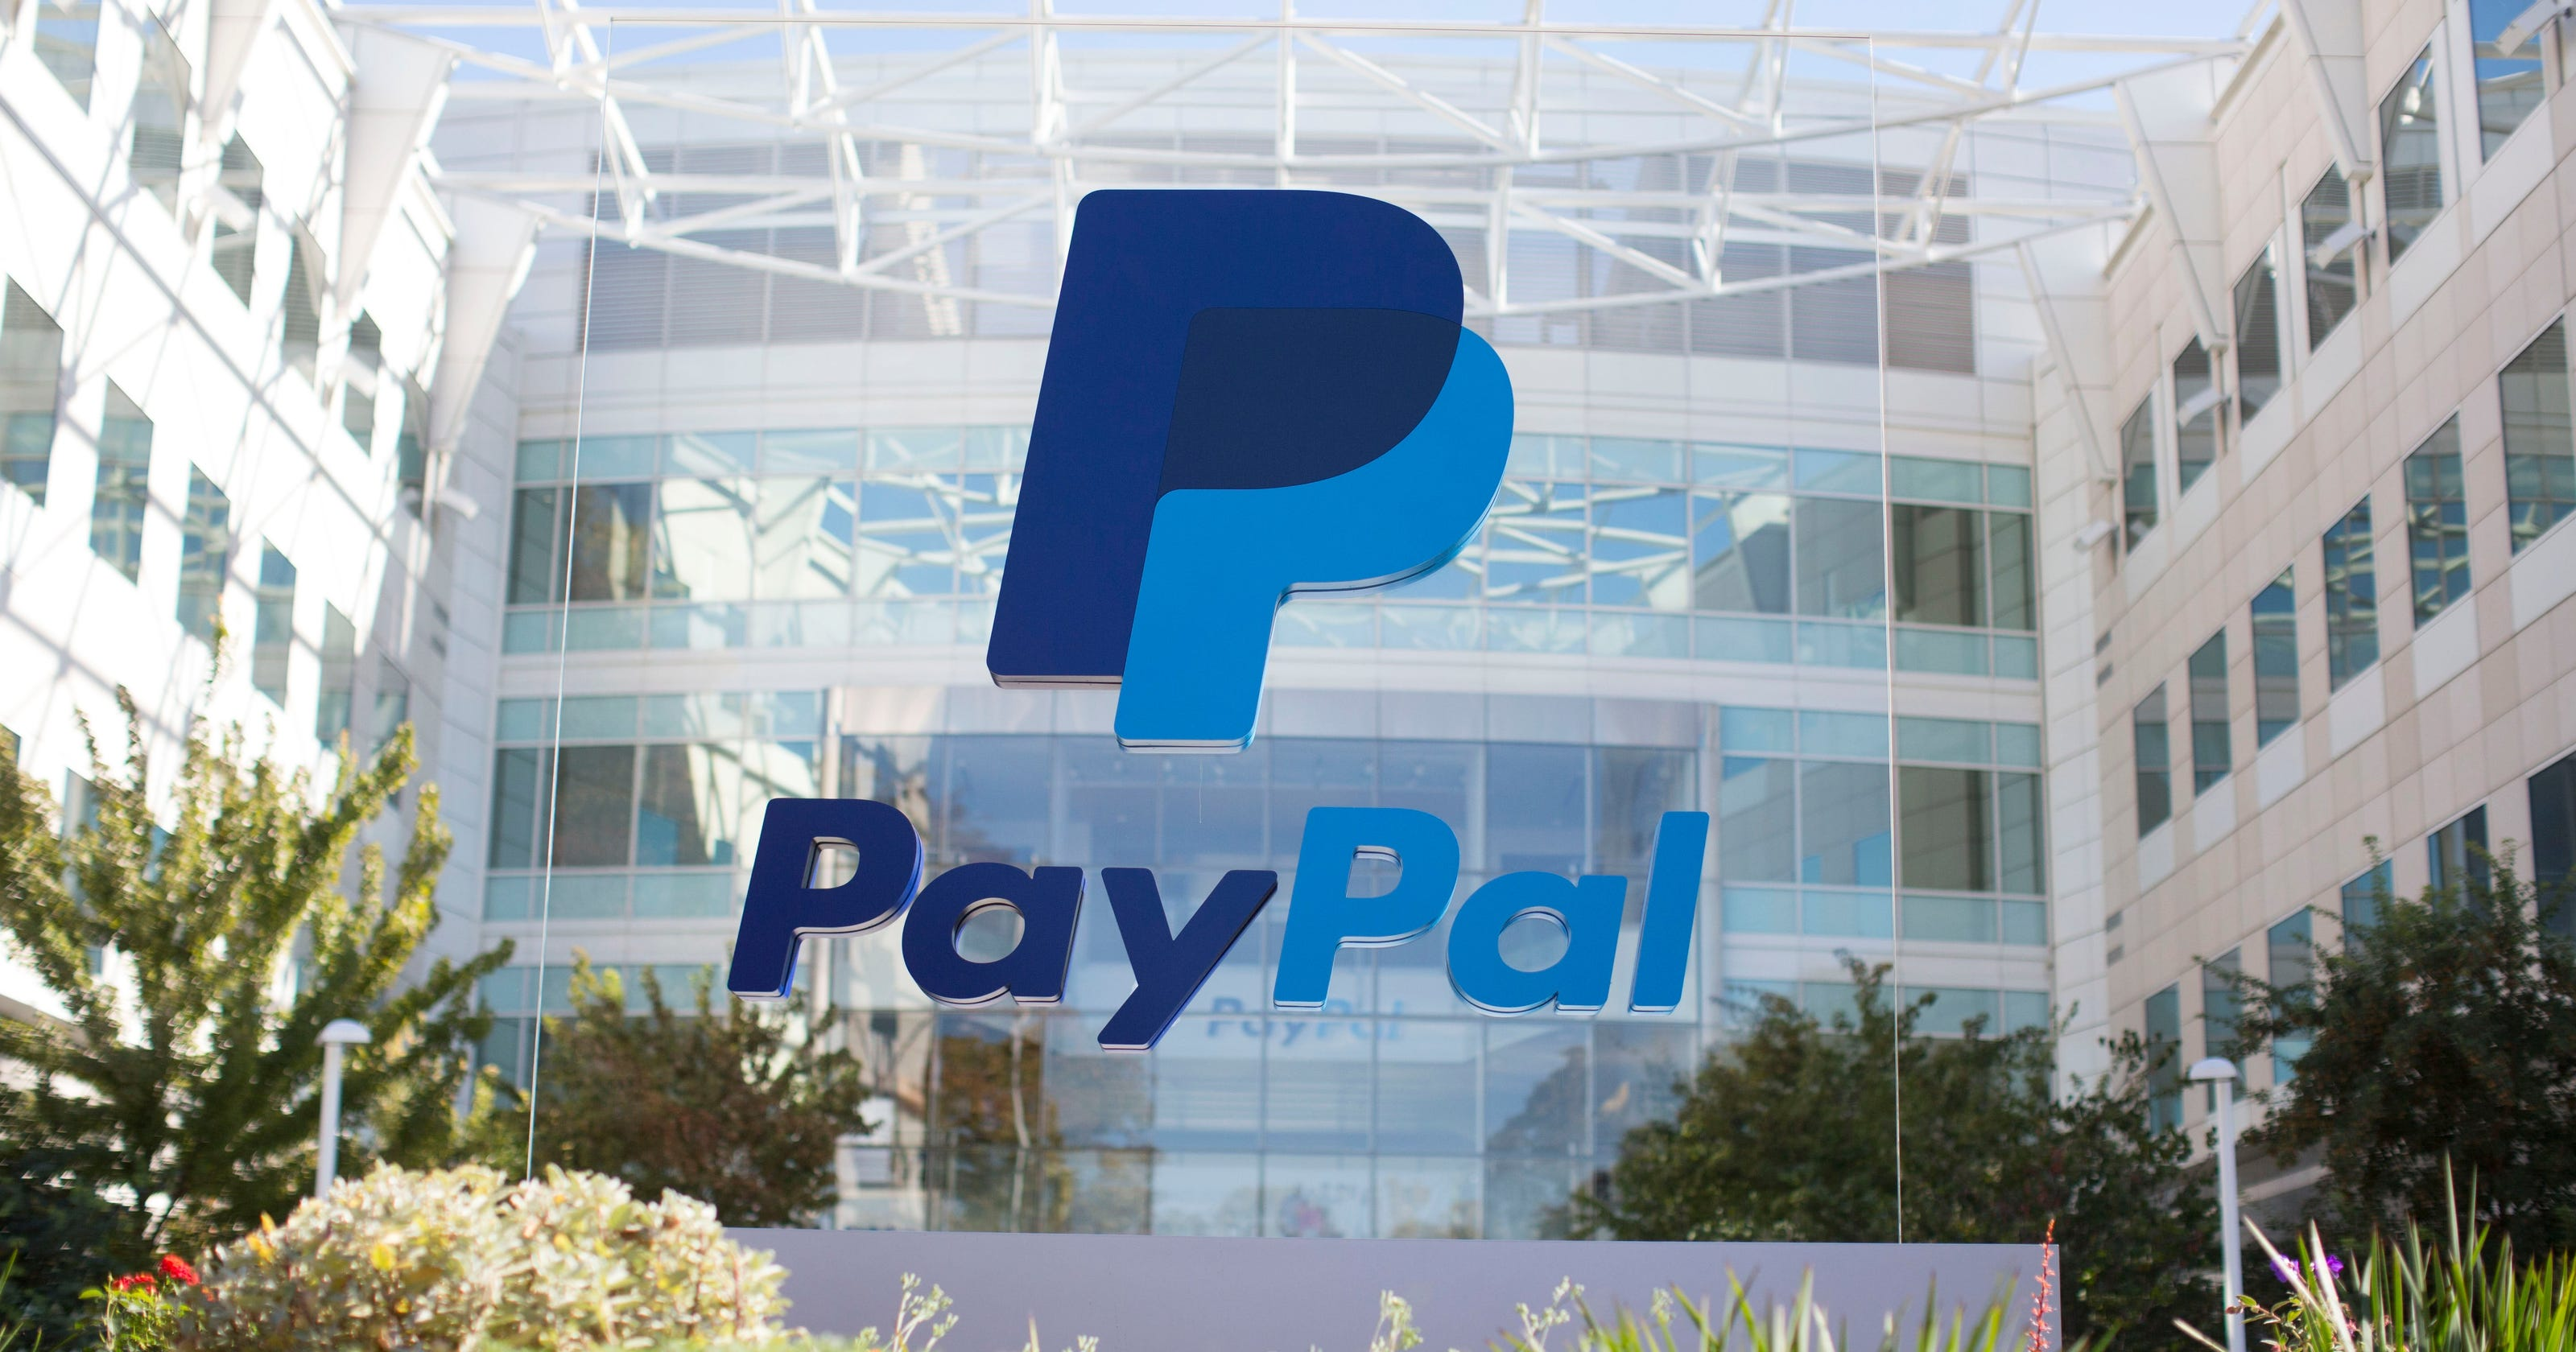 Counterfeit invoices for phony grants aim PayPal customers thumbnail